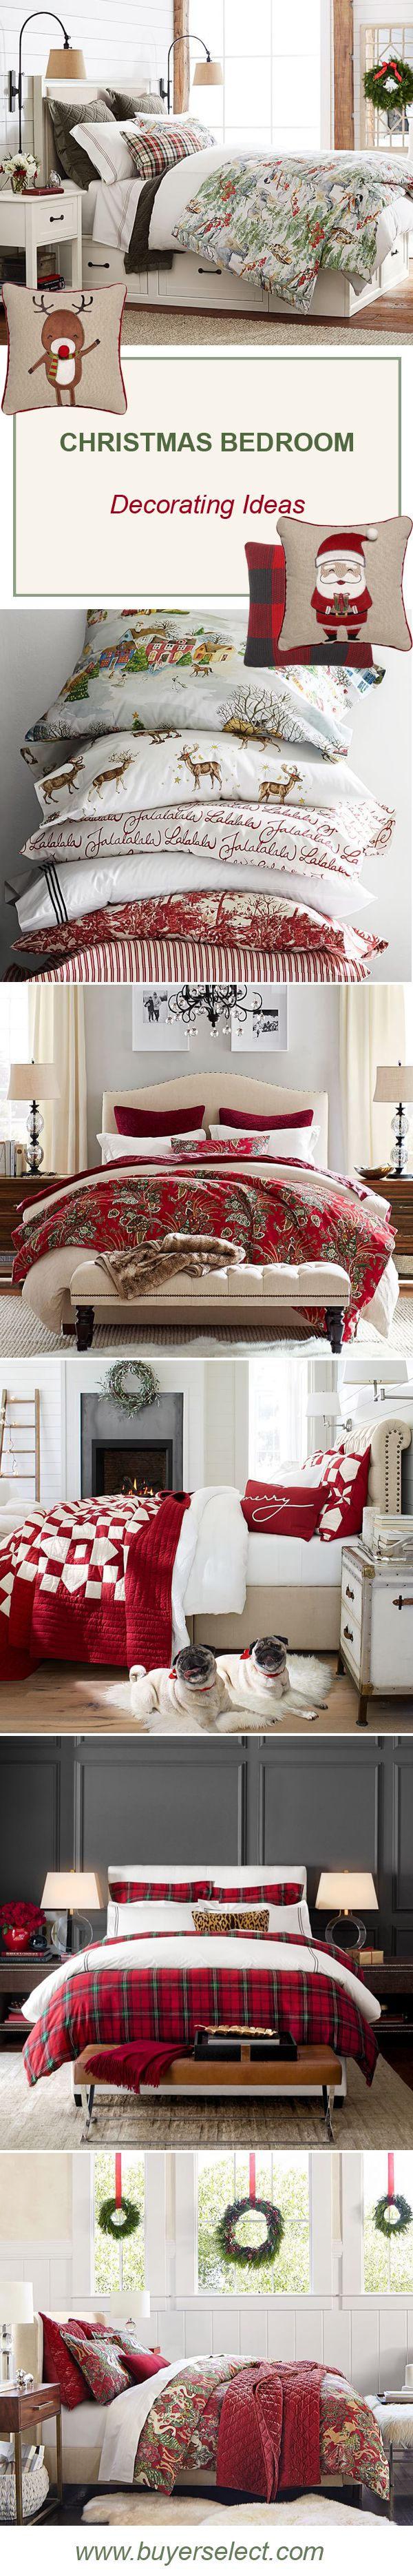 Christmas Bedroom Decorating Ideas & Decor